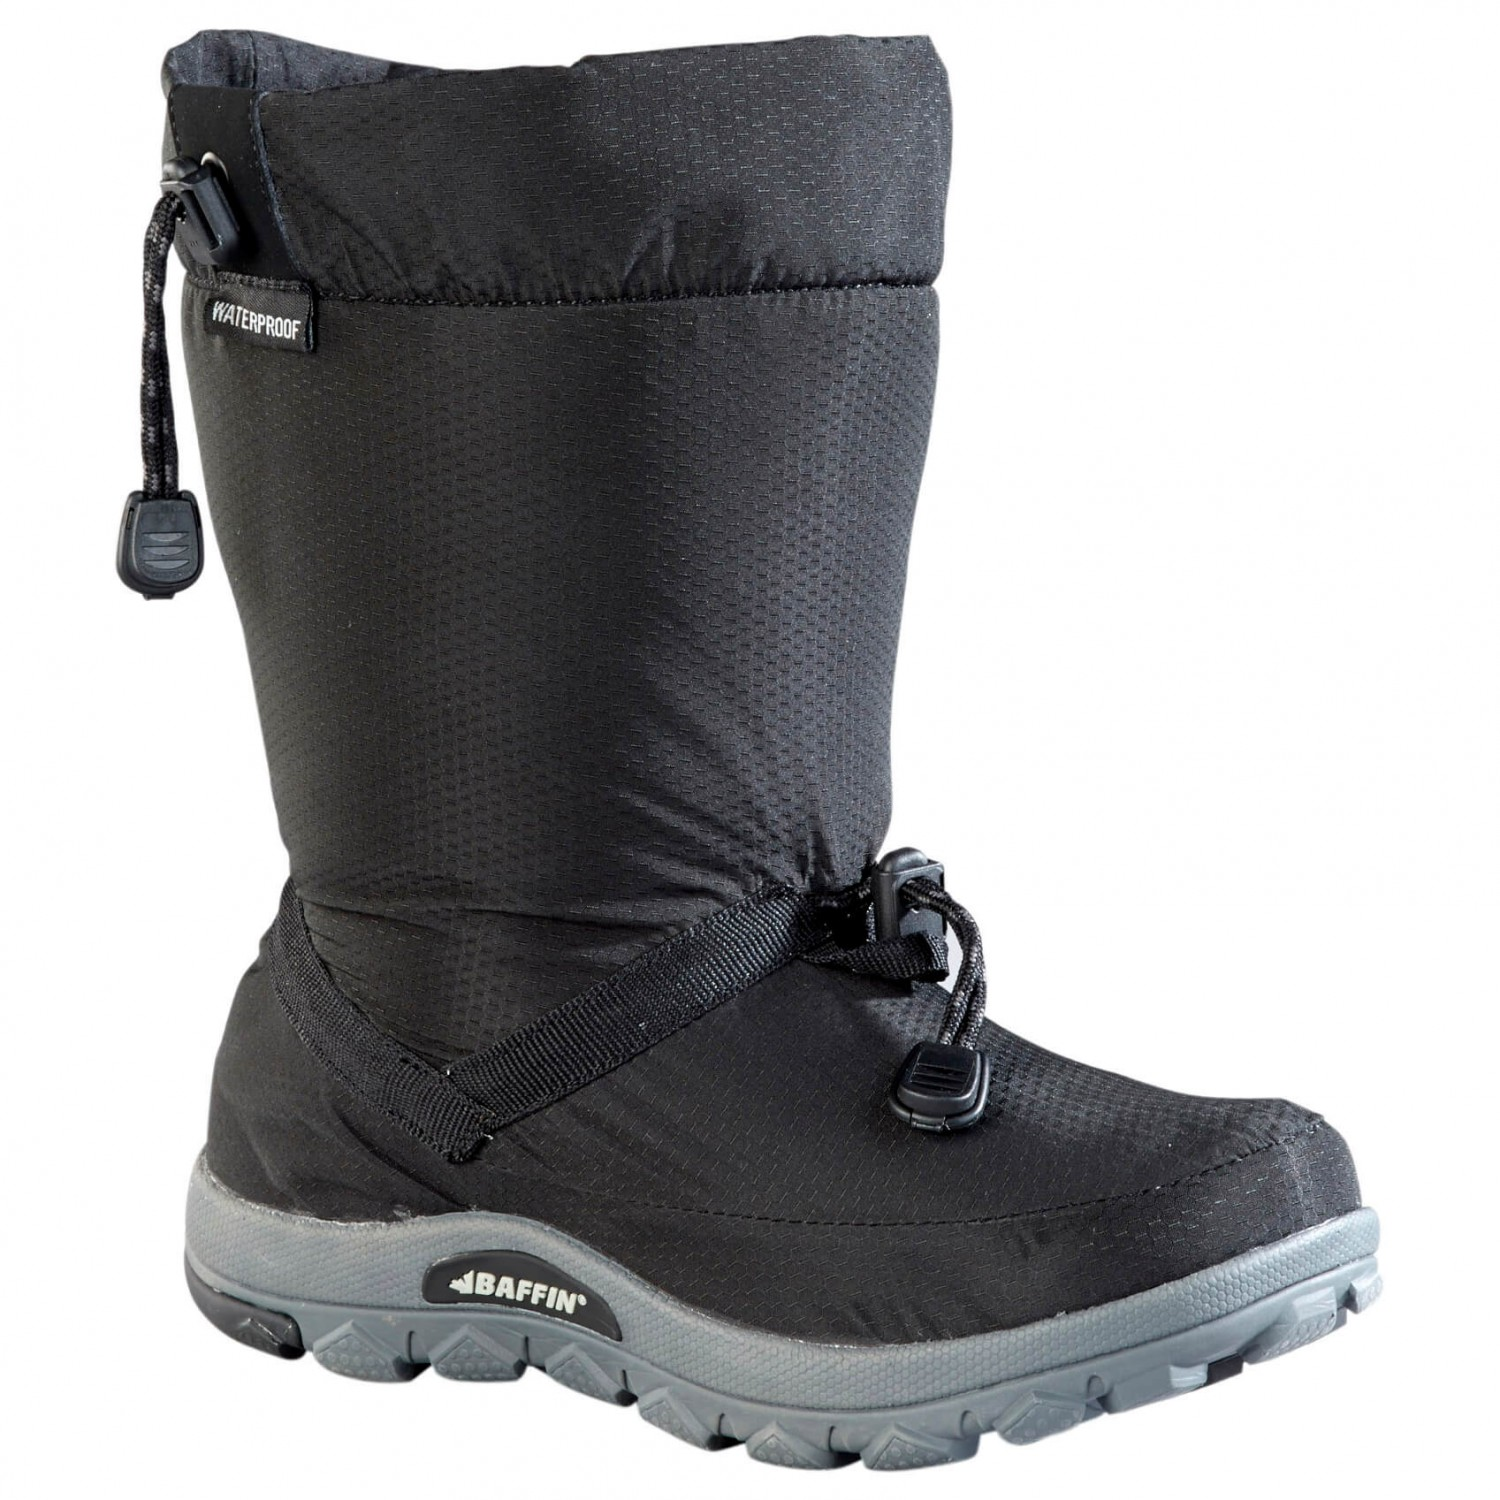 Baffin Ease - Winter Boots Women's | Free UK Delivery